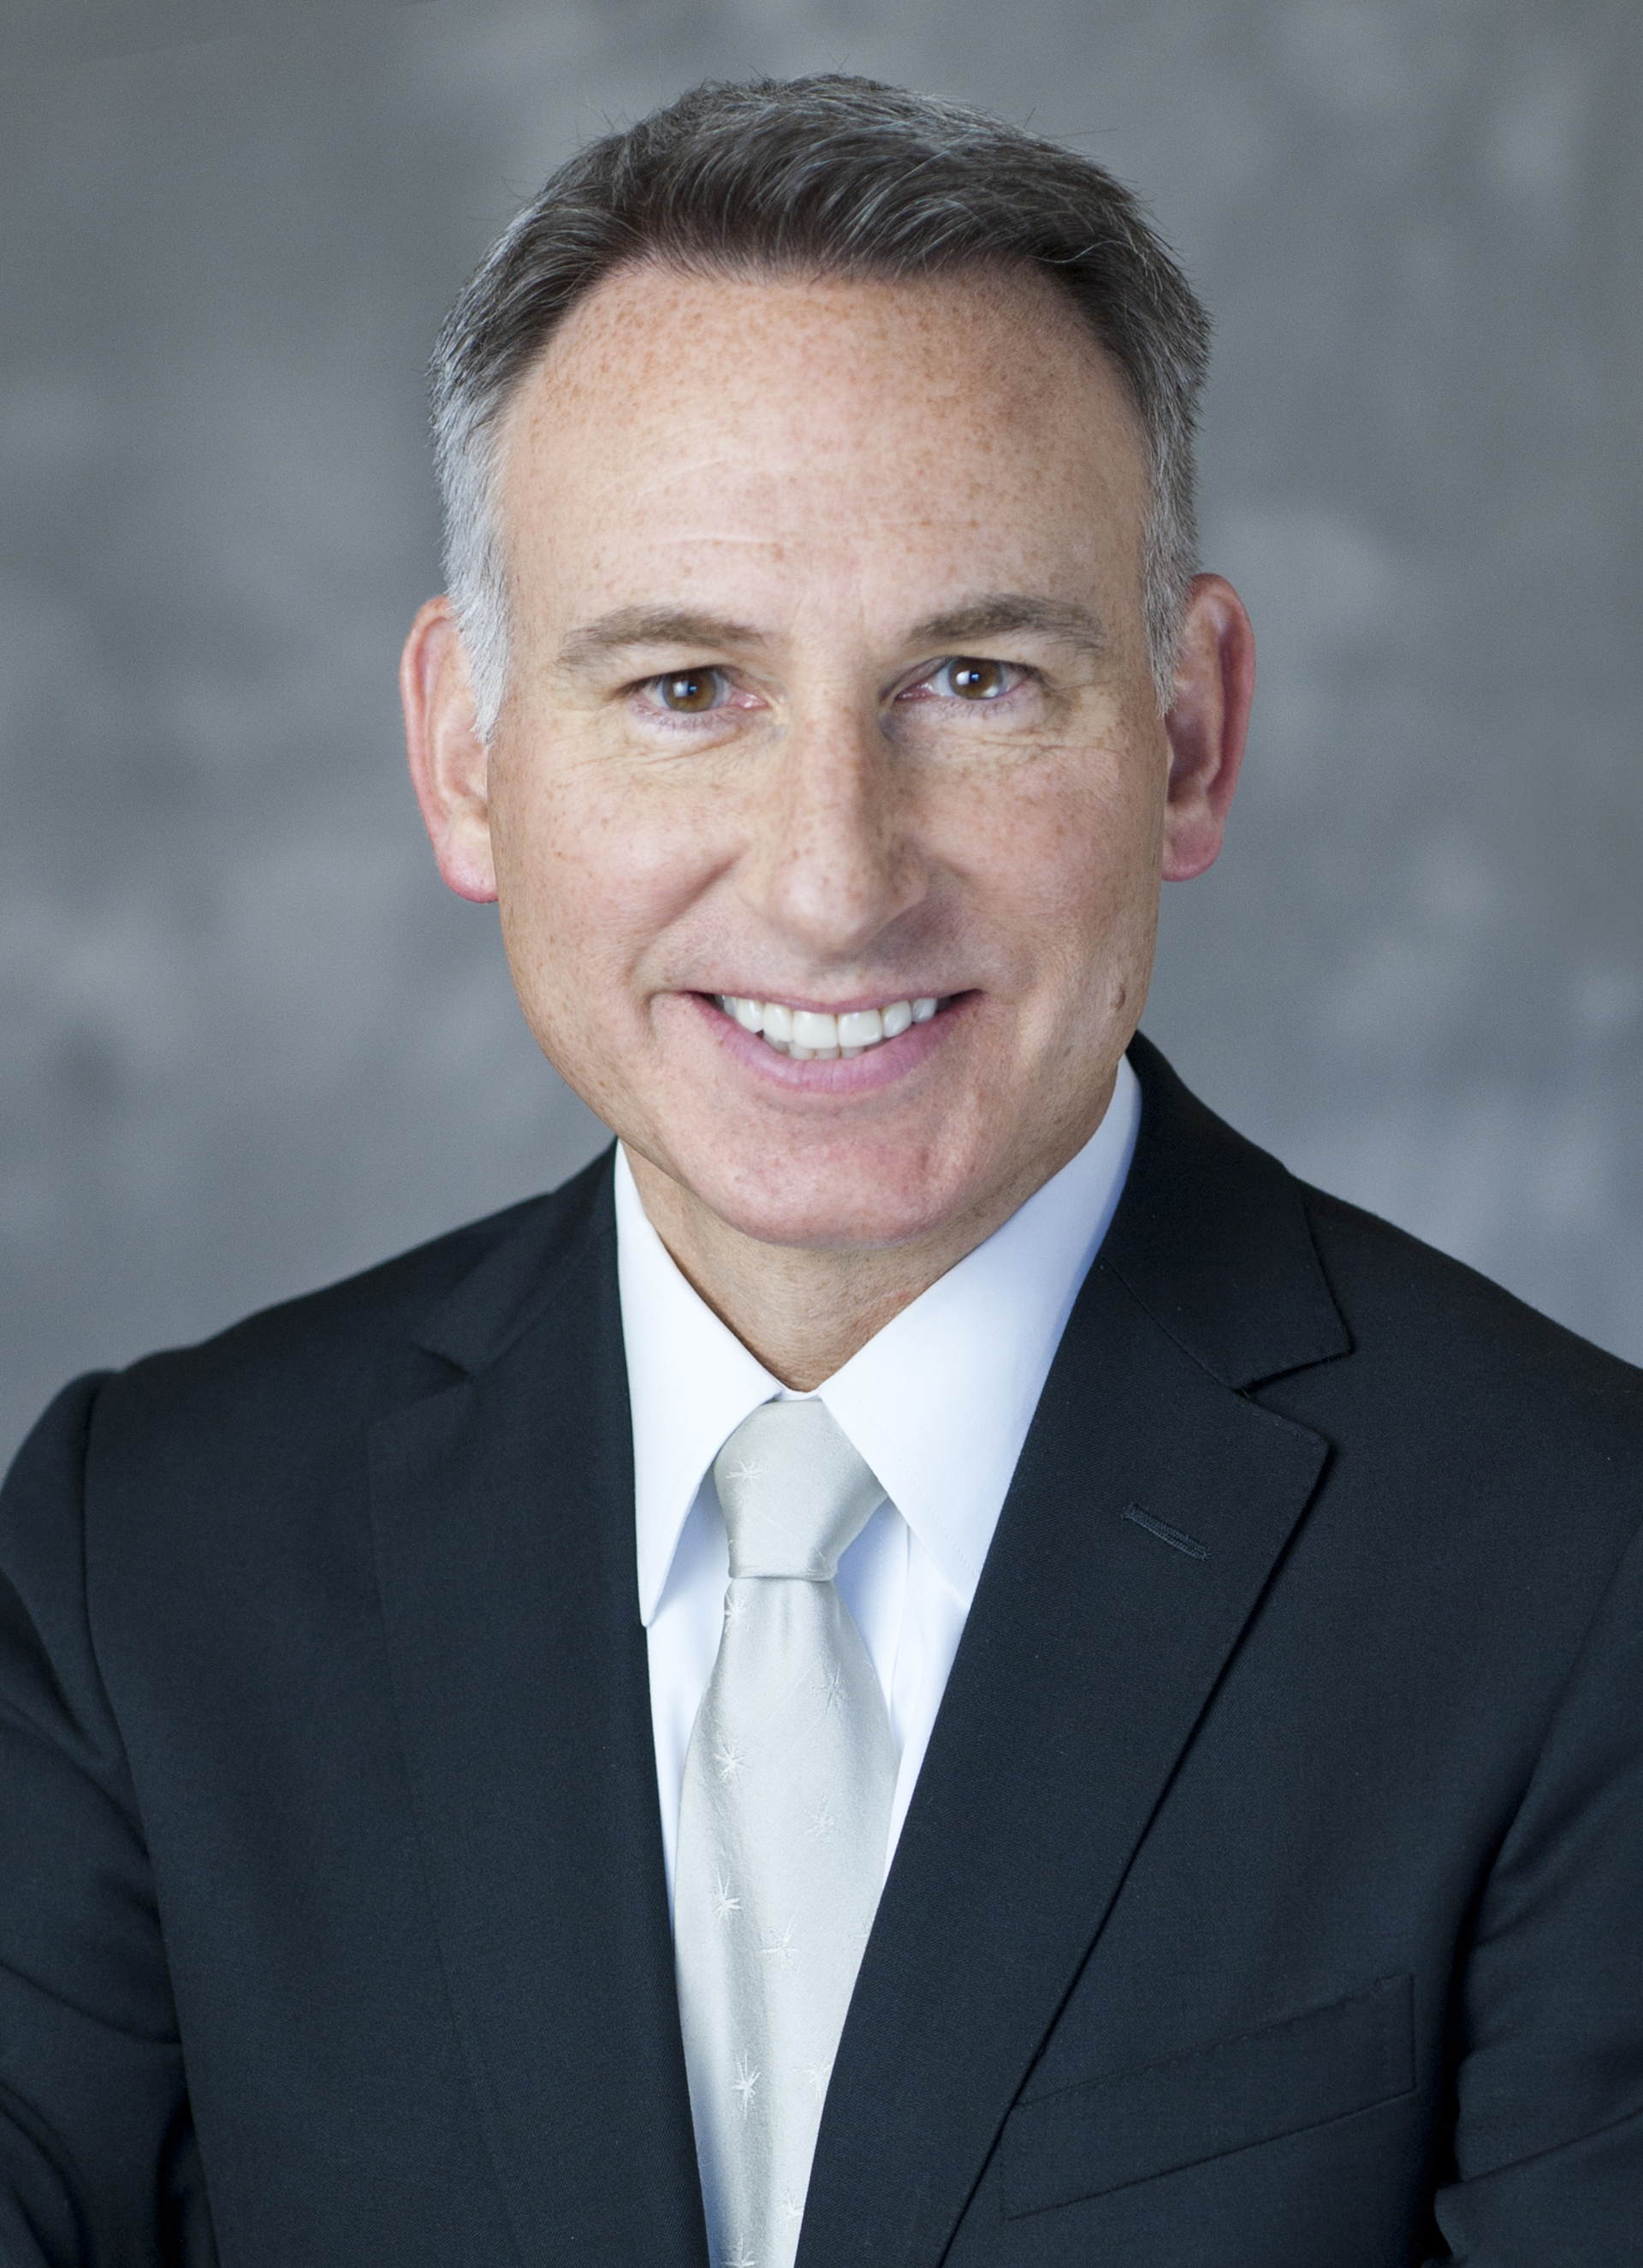 A portrait of King County Executive Dow Constantine